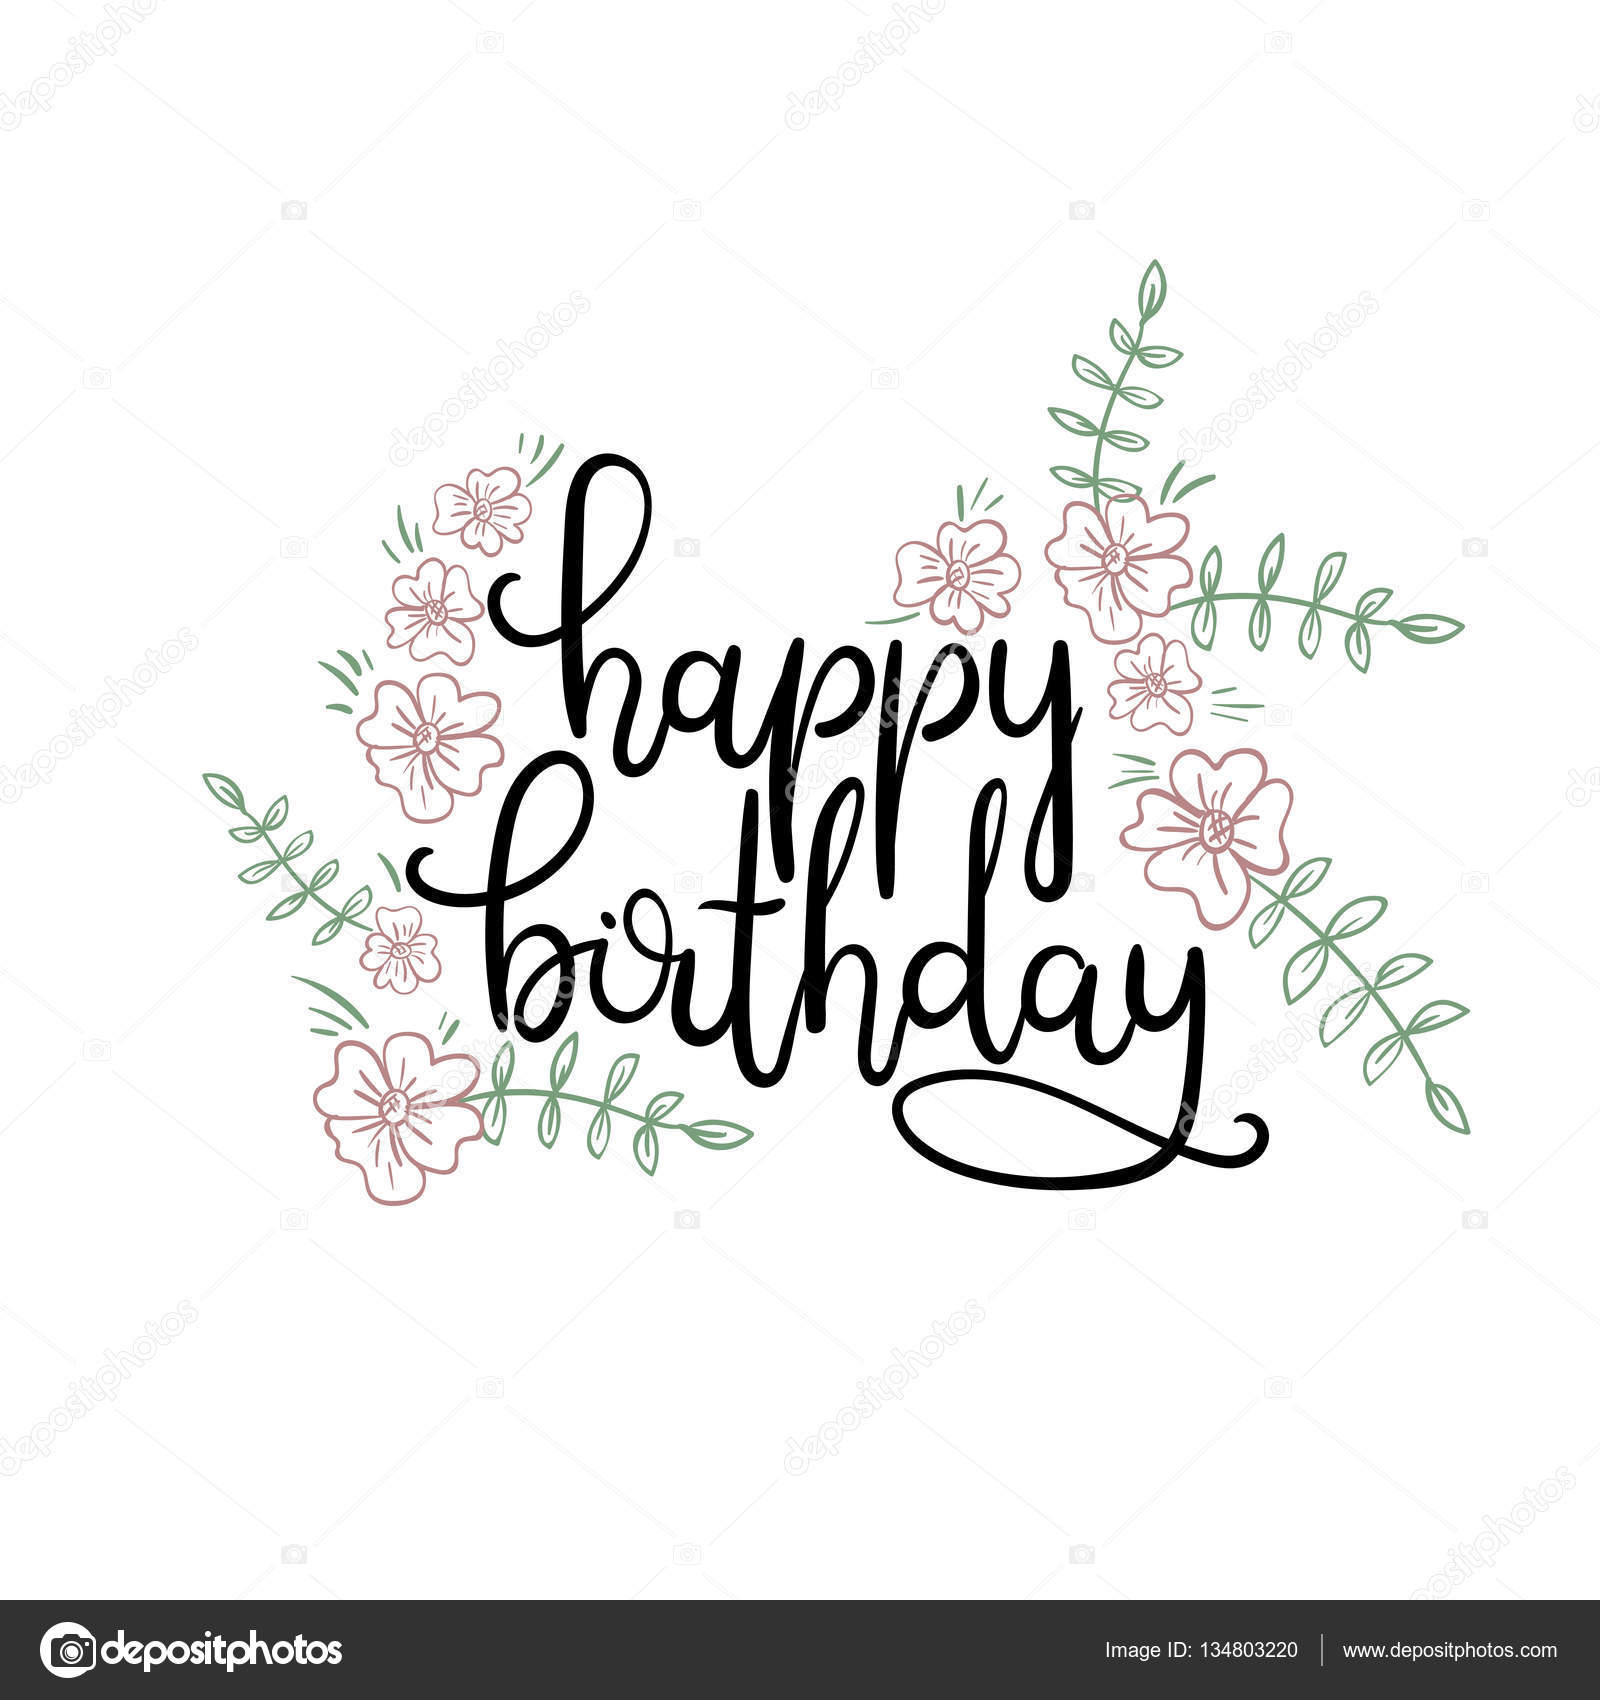 happy birthday hand lettering happy birthday lettering greeting card modern 11662 | depositphotos 134803220 stock illustration happy birthday hand lettering greeting